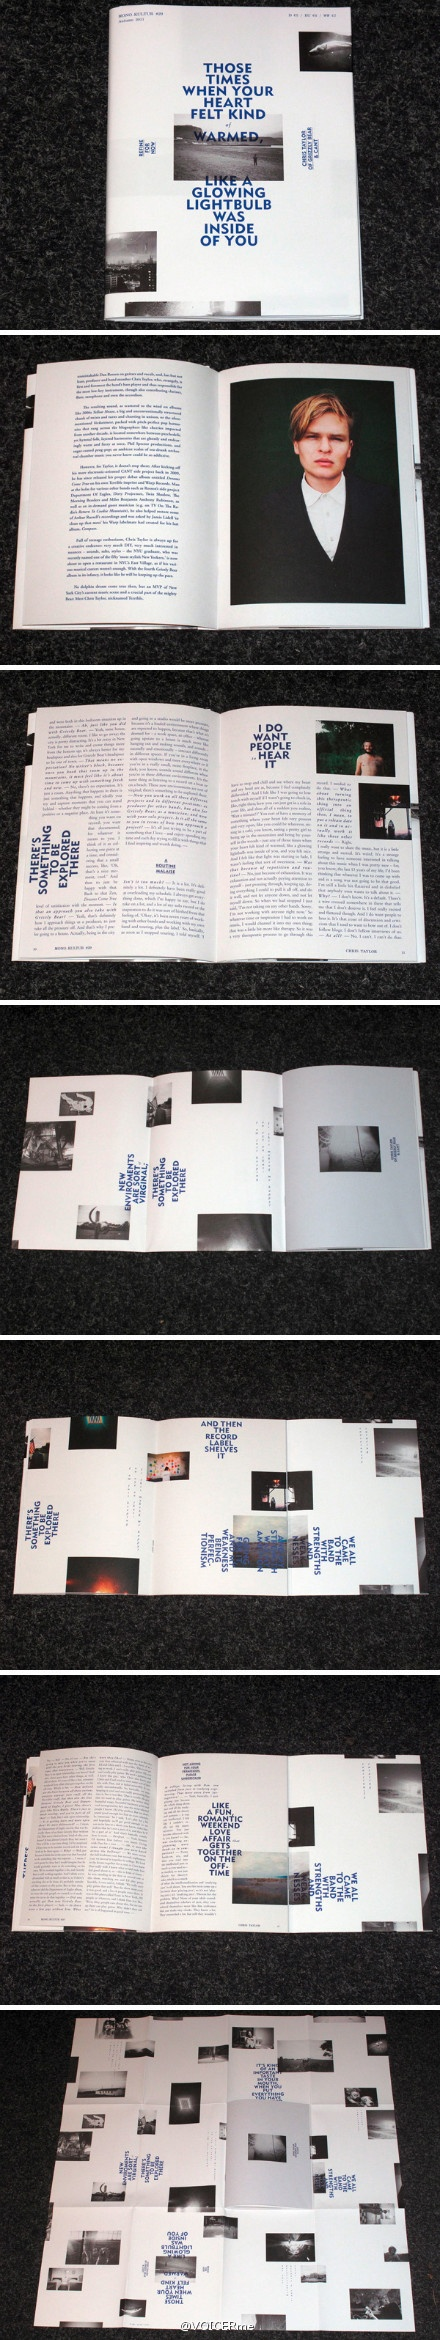 "杂志 | 柏林人物访谈独立杂志mono.kultur最新一期#29的主角是,摄影师Chris Taylor。""Those times when your heart felt kind of warmed, like a glowing lightbulb was inside of you."" - Chris Taylor"